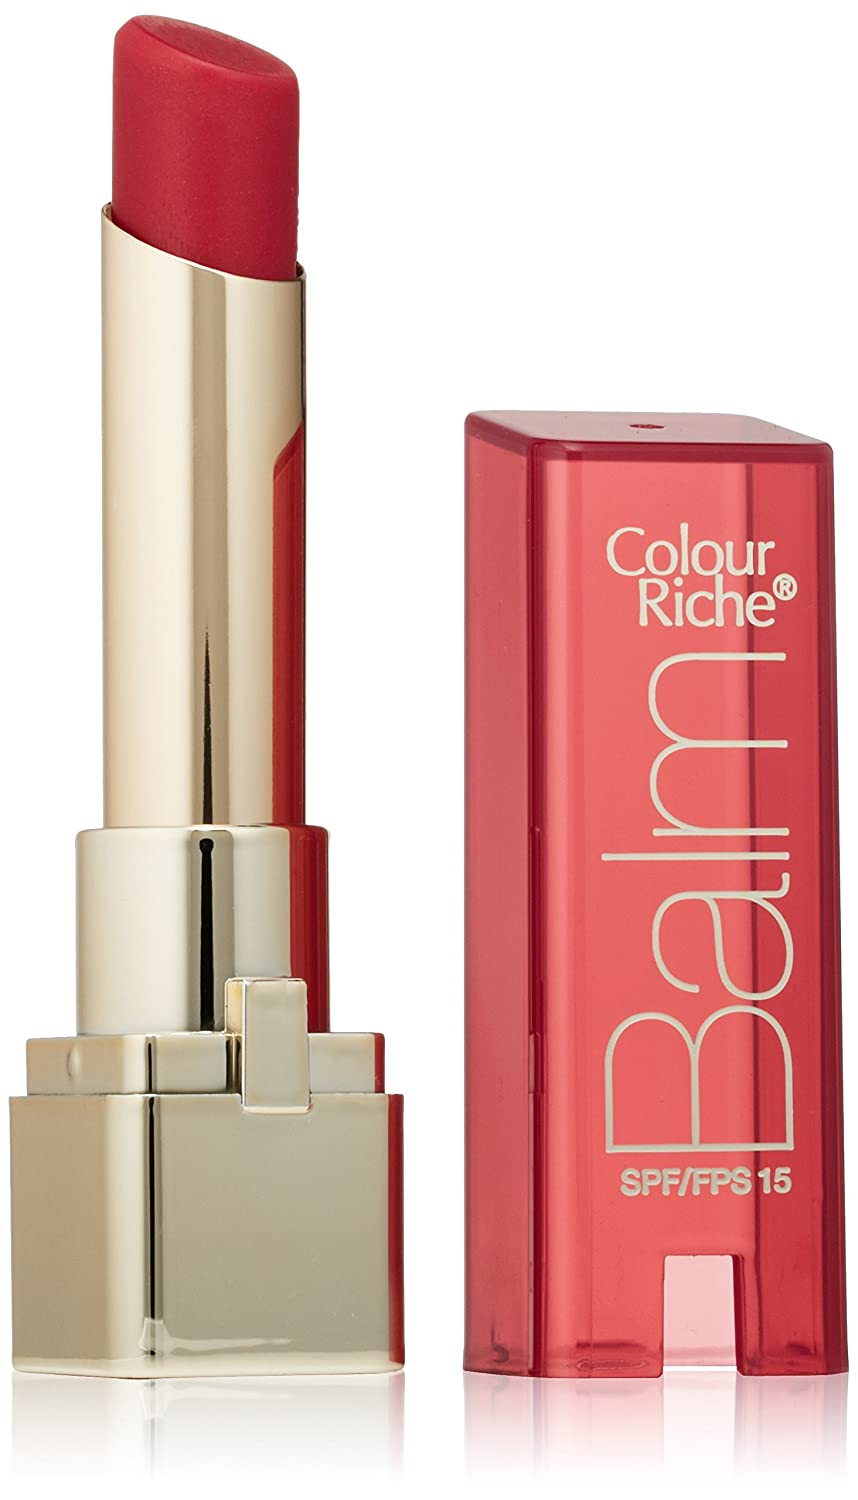 L'Oréal Paris Colour Riche Balm, 118 Pink Satin, 0.1 oz. L' Oreal Paris Cosmetics Col-9662